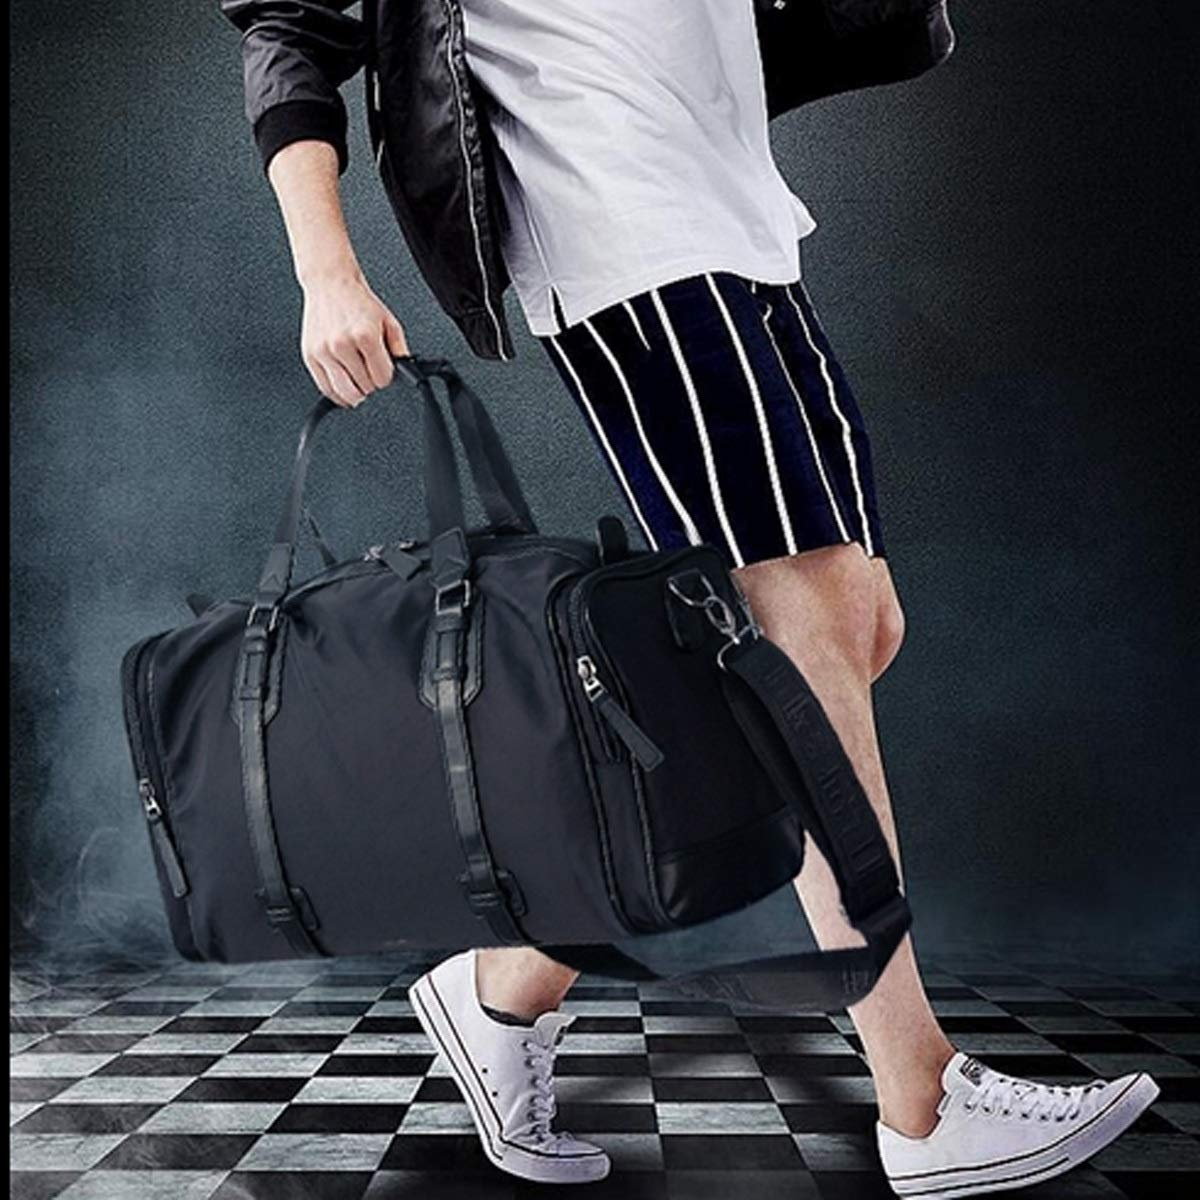 Waterproof And Wearable Luggage Bag Large Capacity Xionghaizi Duffel Bag Travel Storage Esse Work Bag Upgraded Retro Multi-functional Canvas Bag 22 Inches Classic Multi-color Optional Handbag